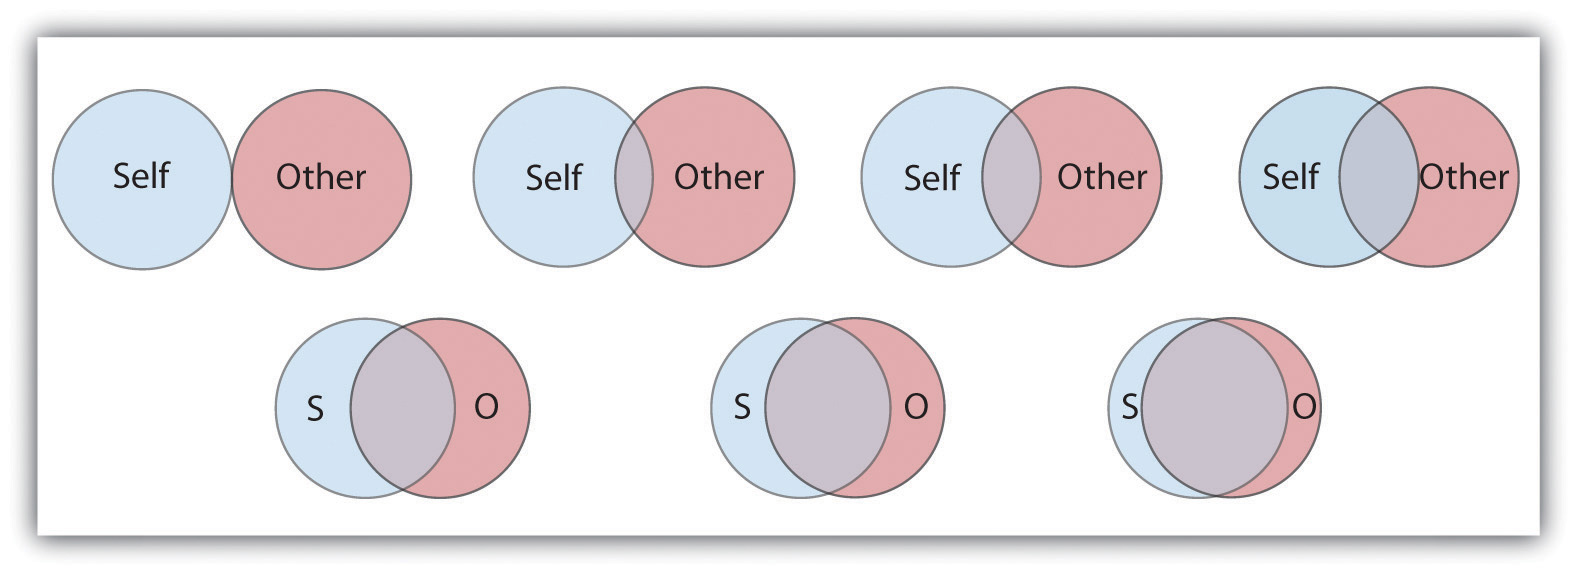 These Venn diagrams show seven degrees of relation between the Self and the Other.